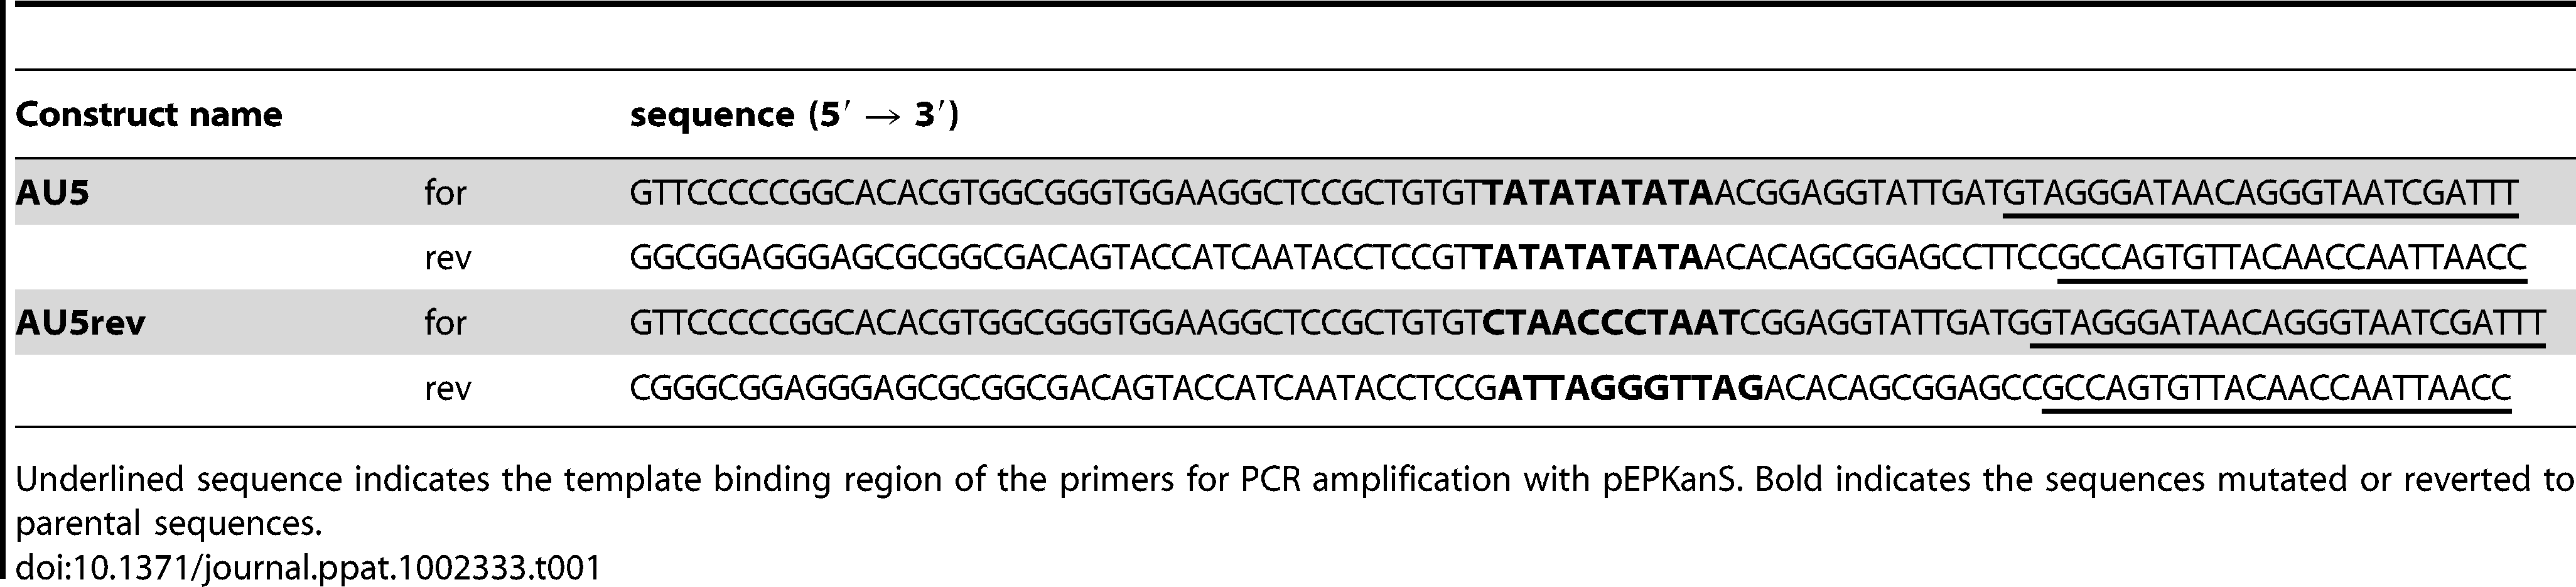 Primers used for cloning and generation of mutant and revertant AU5 constructs.